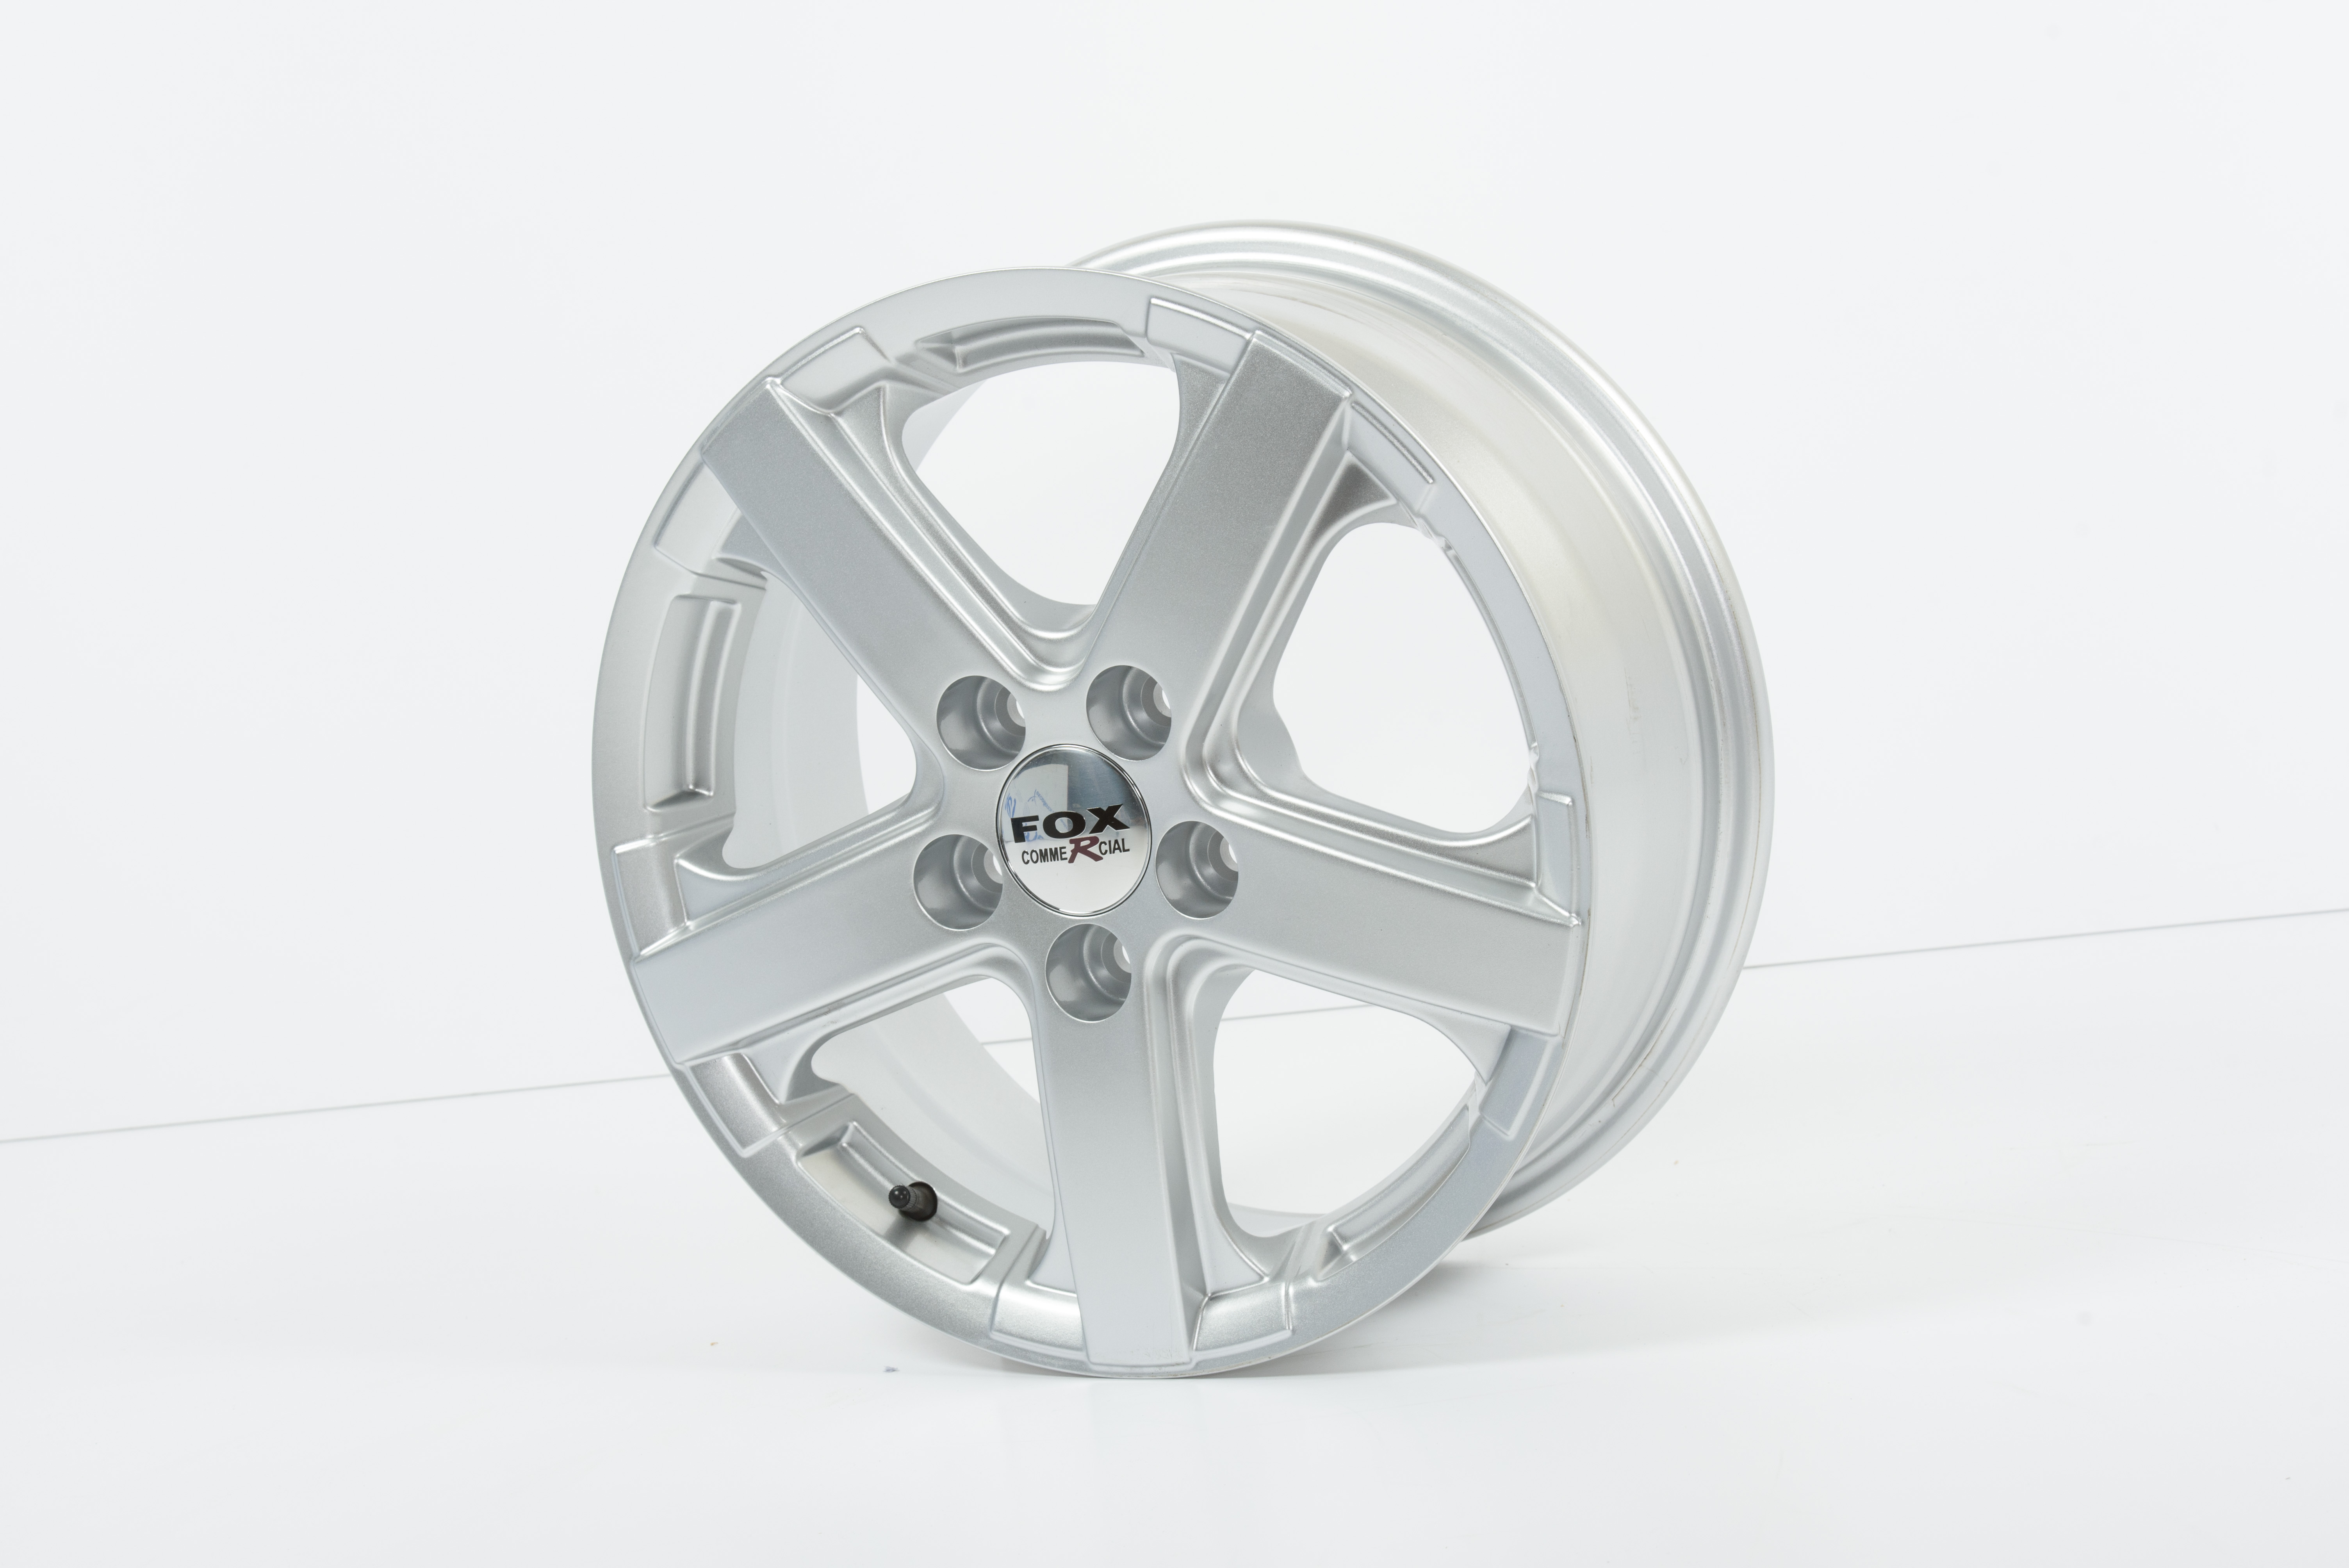 15 Viper Commercial Silver 15 215 7 0 5 215 120 Callaghan Tyres Alloy Wheels Amp Performance Parts